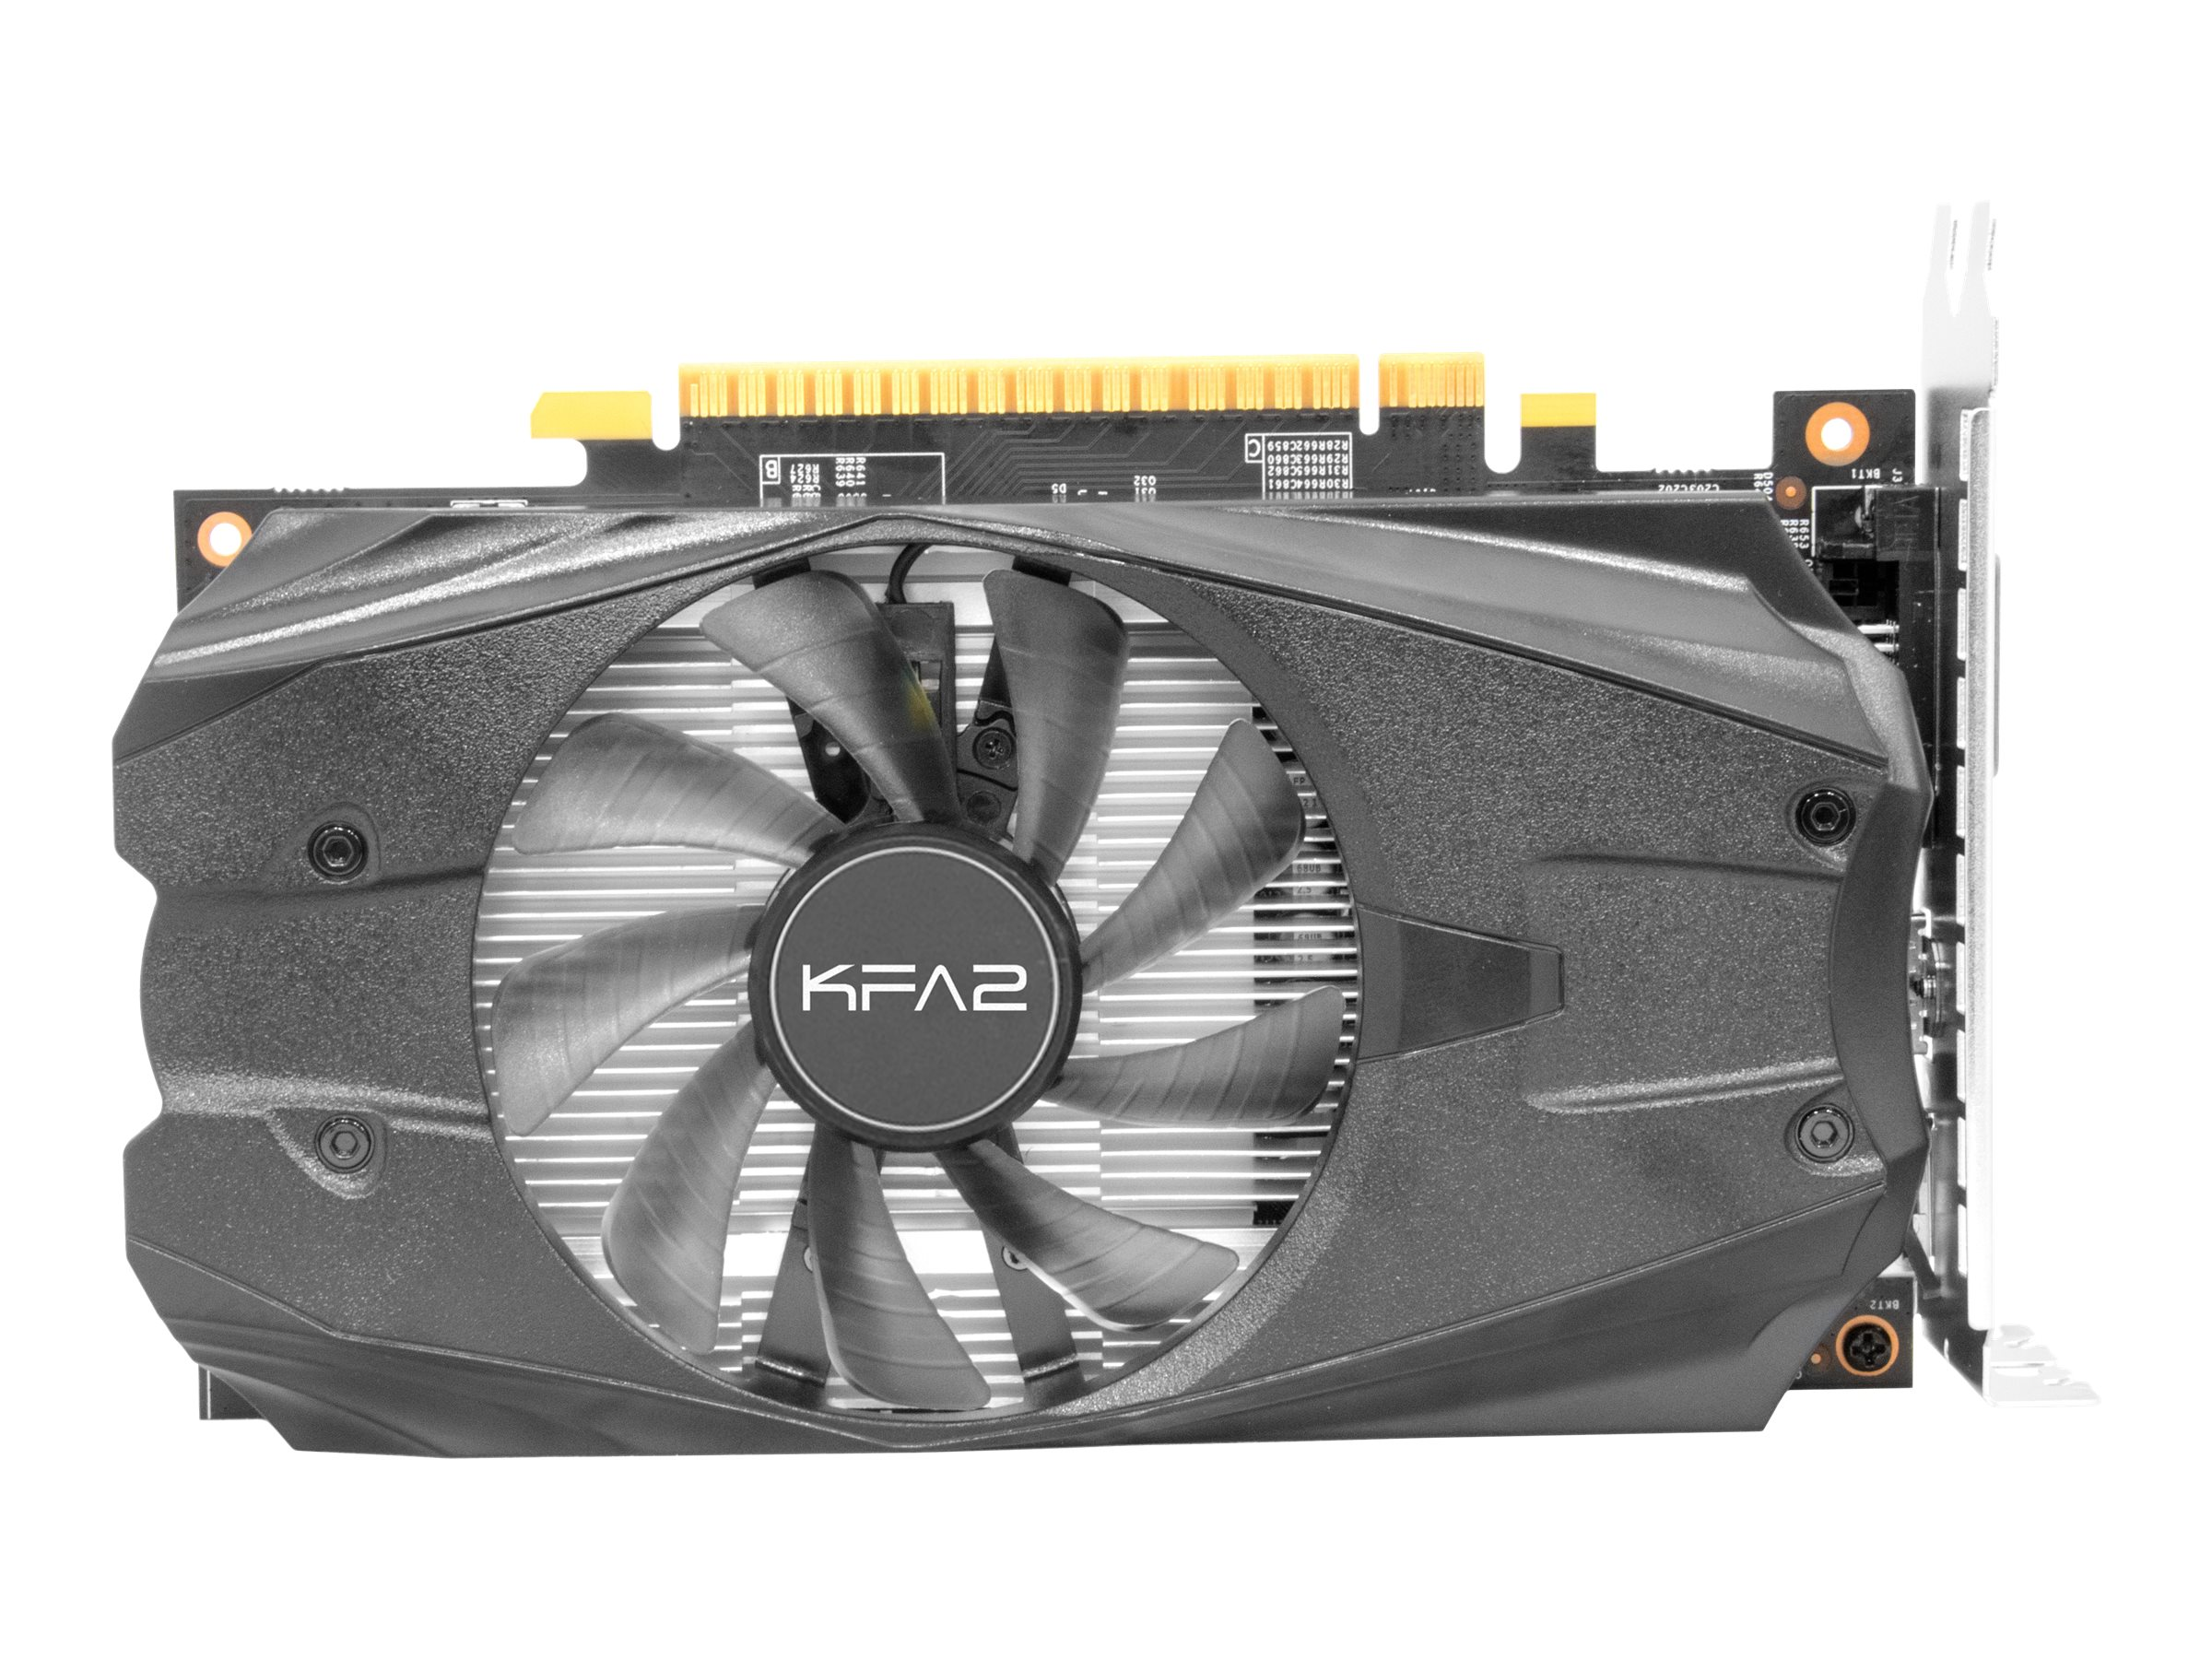 KFA2 GeForce GTX 1050 OC - Grafikkarten - NVIDIA GeForce GTX 1050 - 2 GB GDDR5 - PCIe 3.0 x16 - DVI, HDMI, DisplayPort